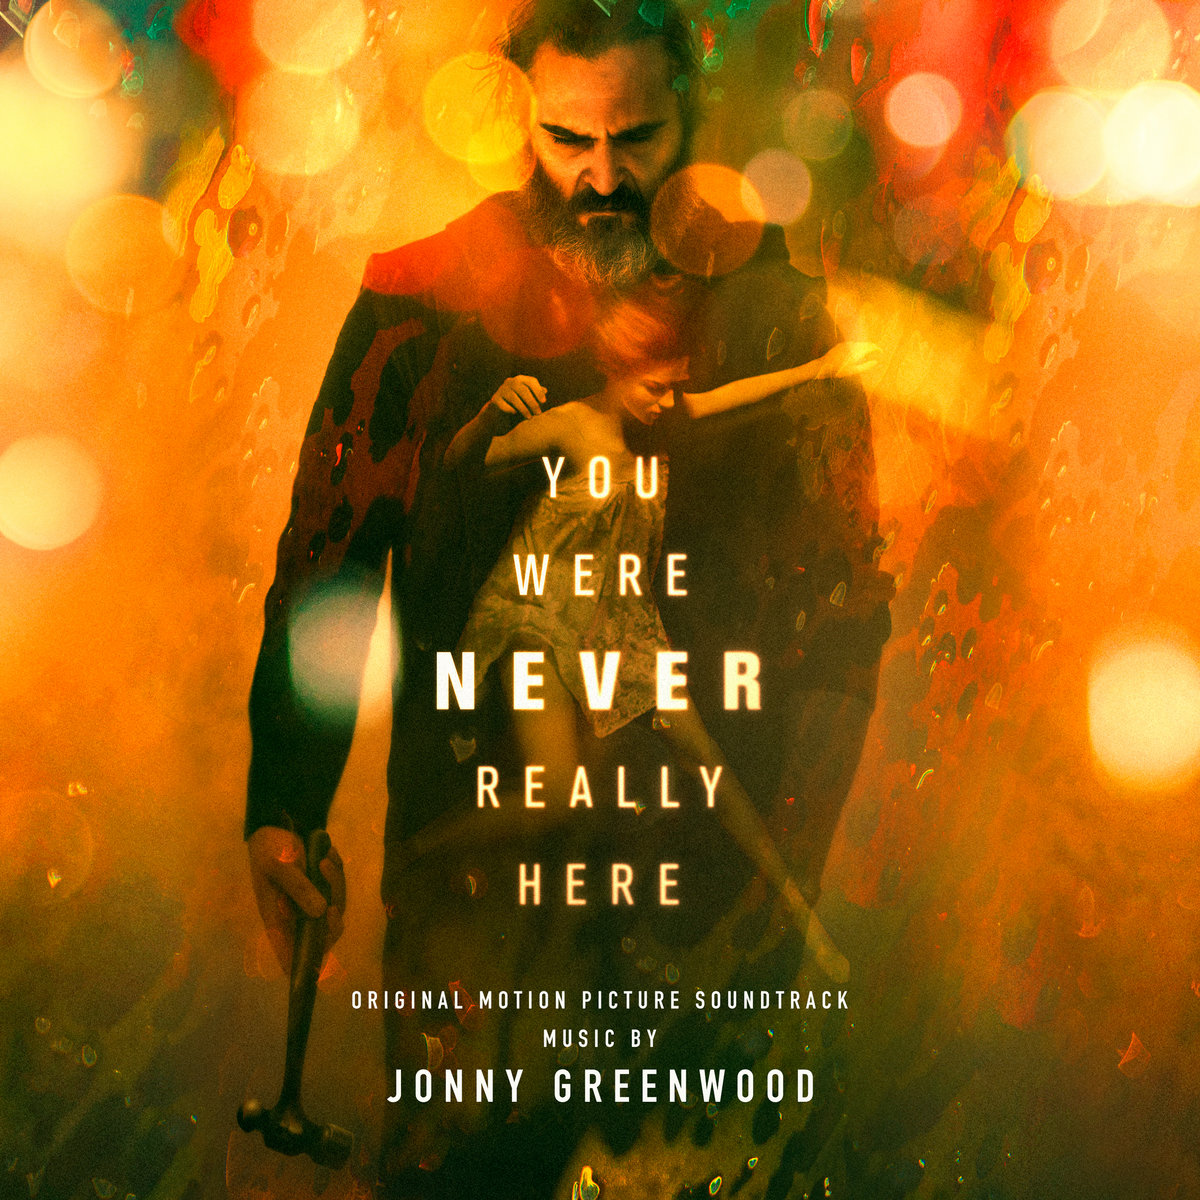 You Were Never Really Here Original Motion Picture